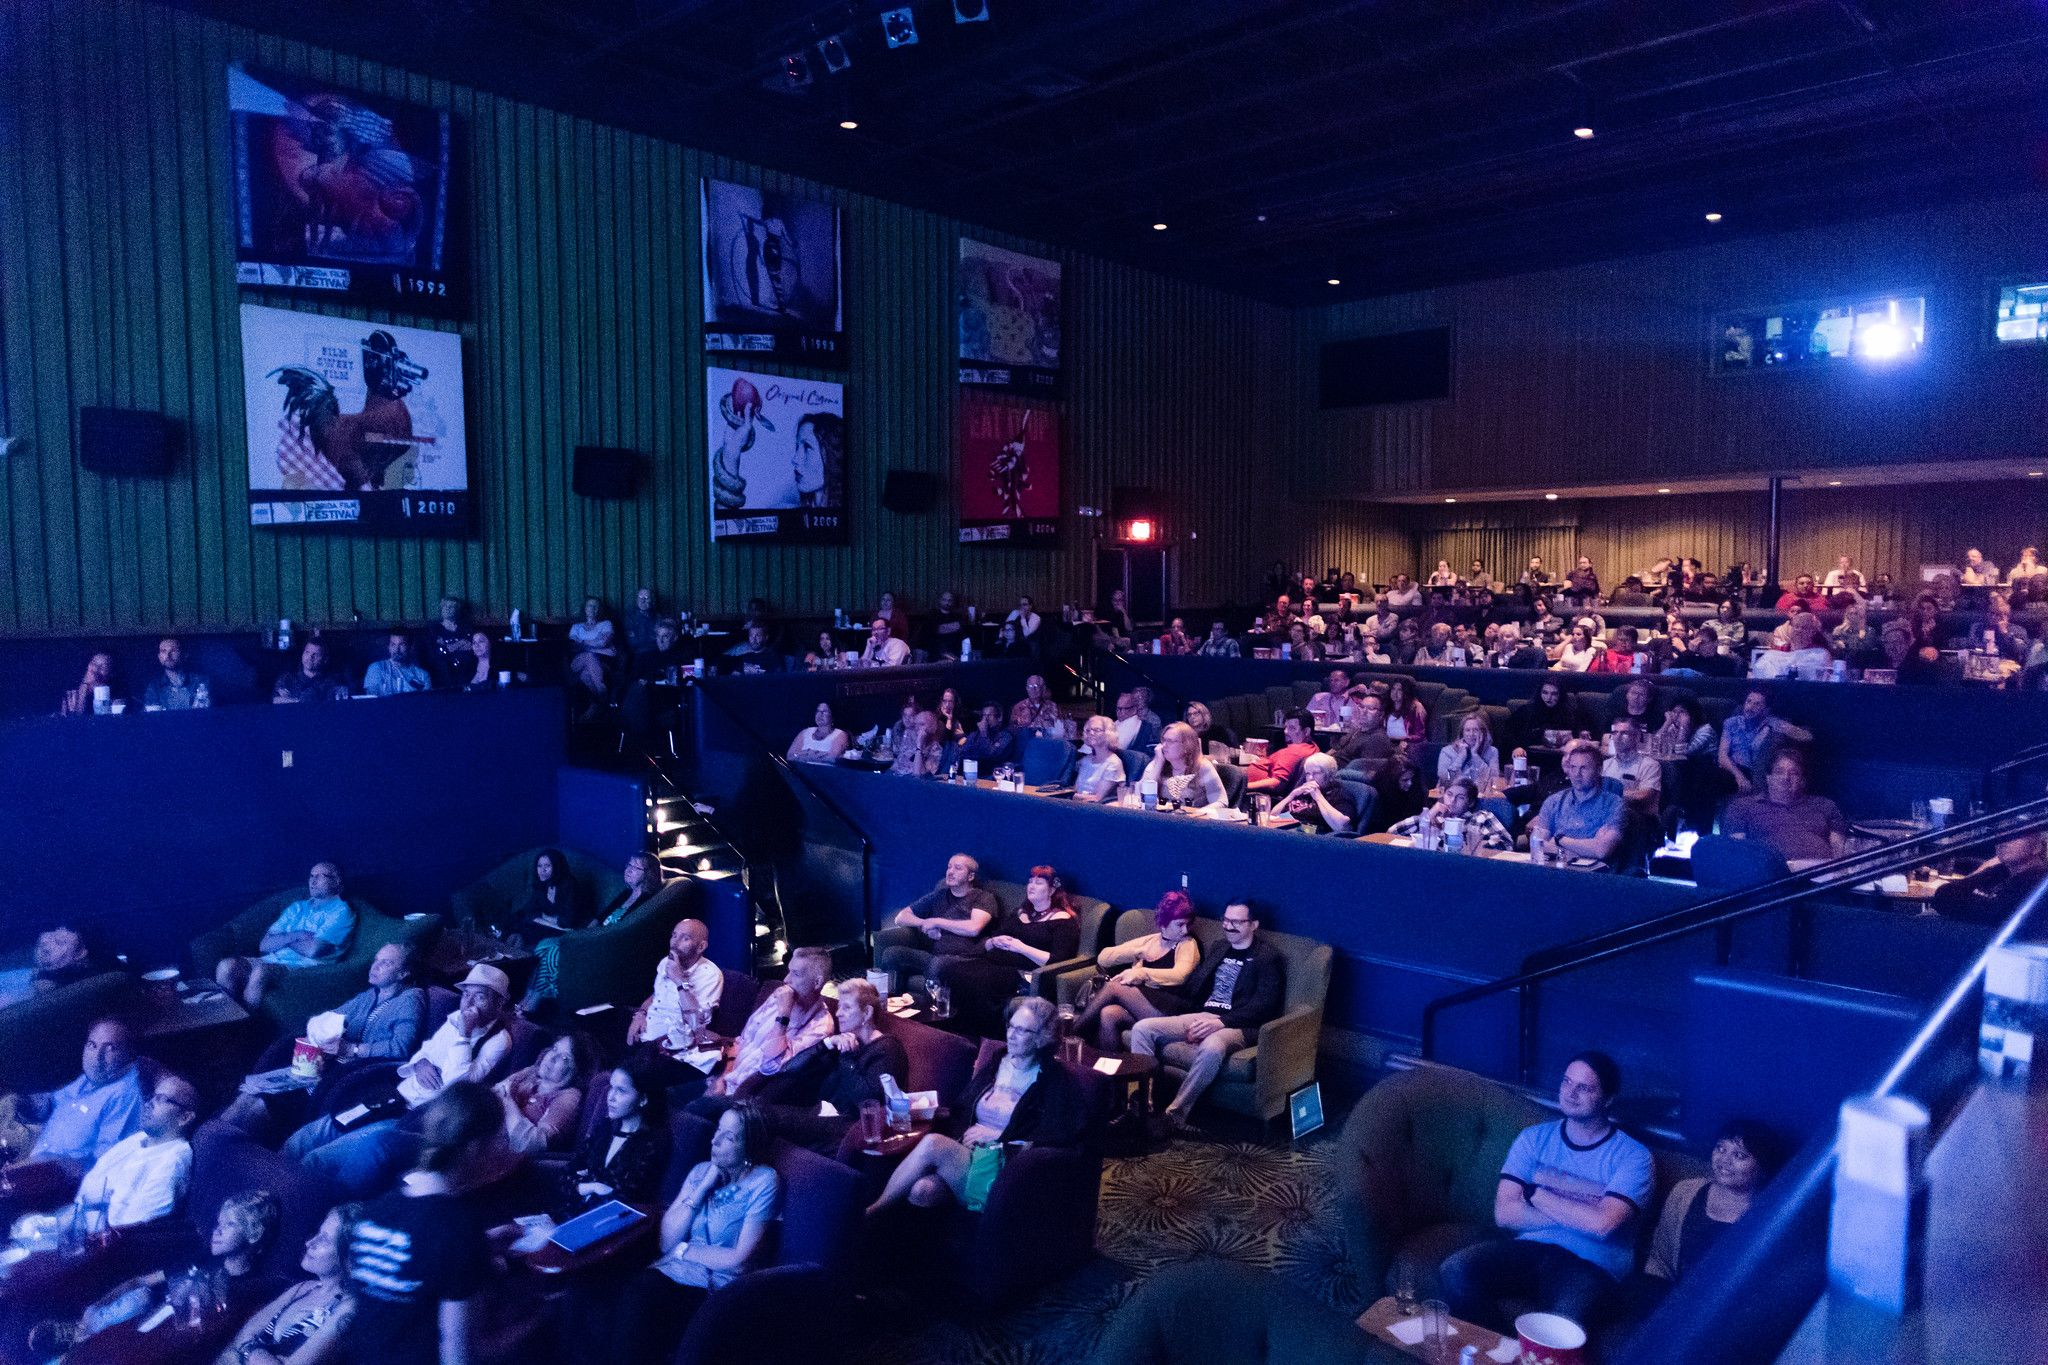 An audience watches Back to the Future at the Florida Film Festival